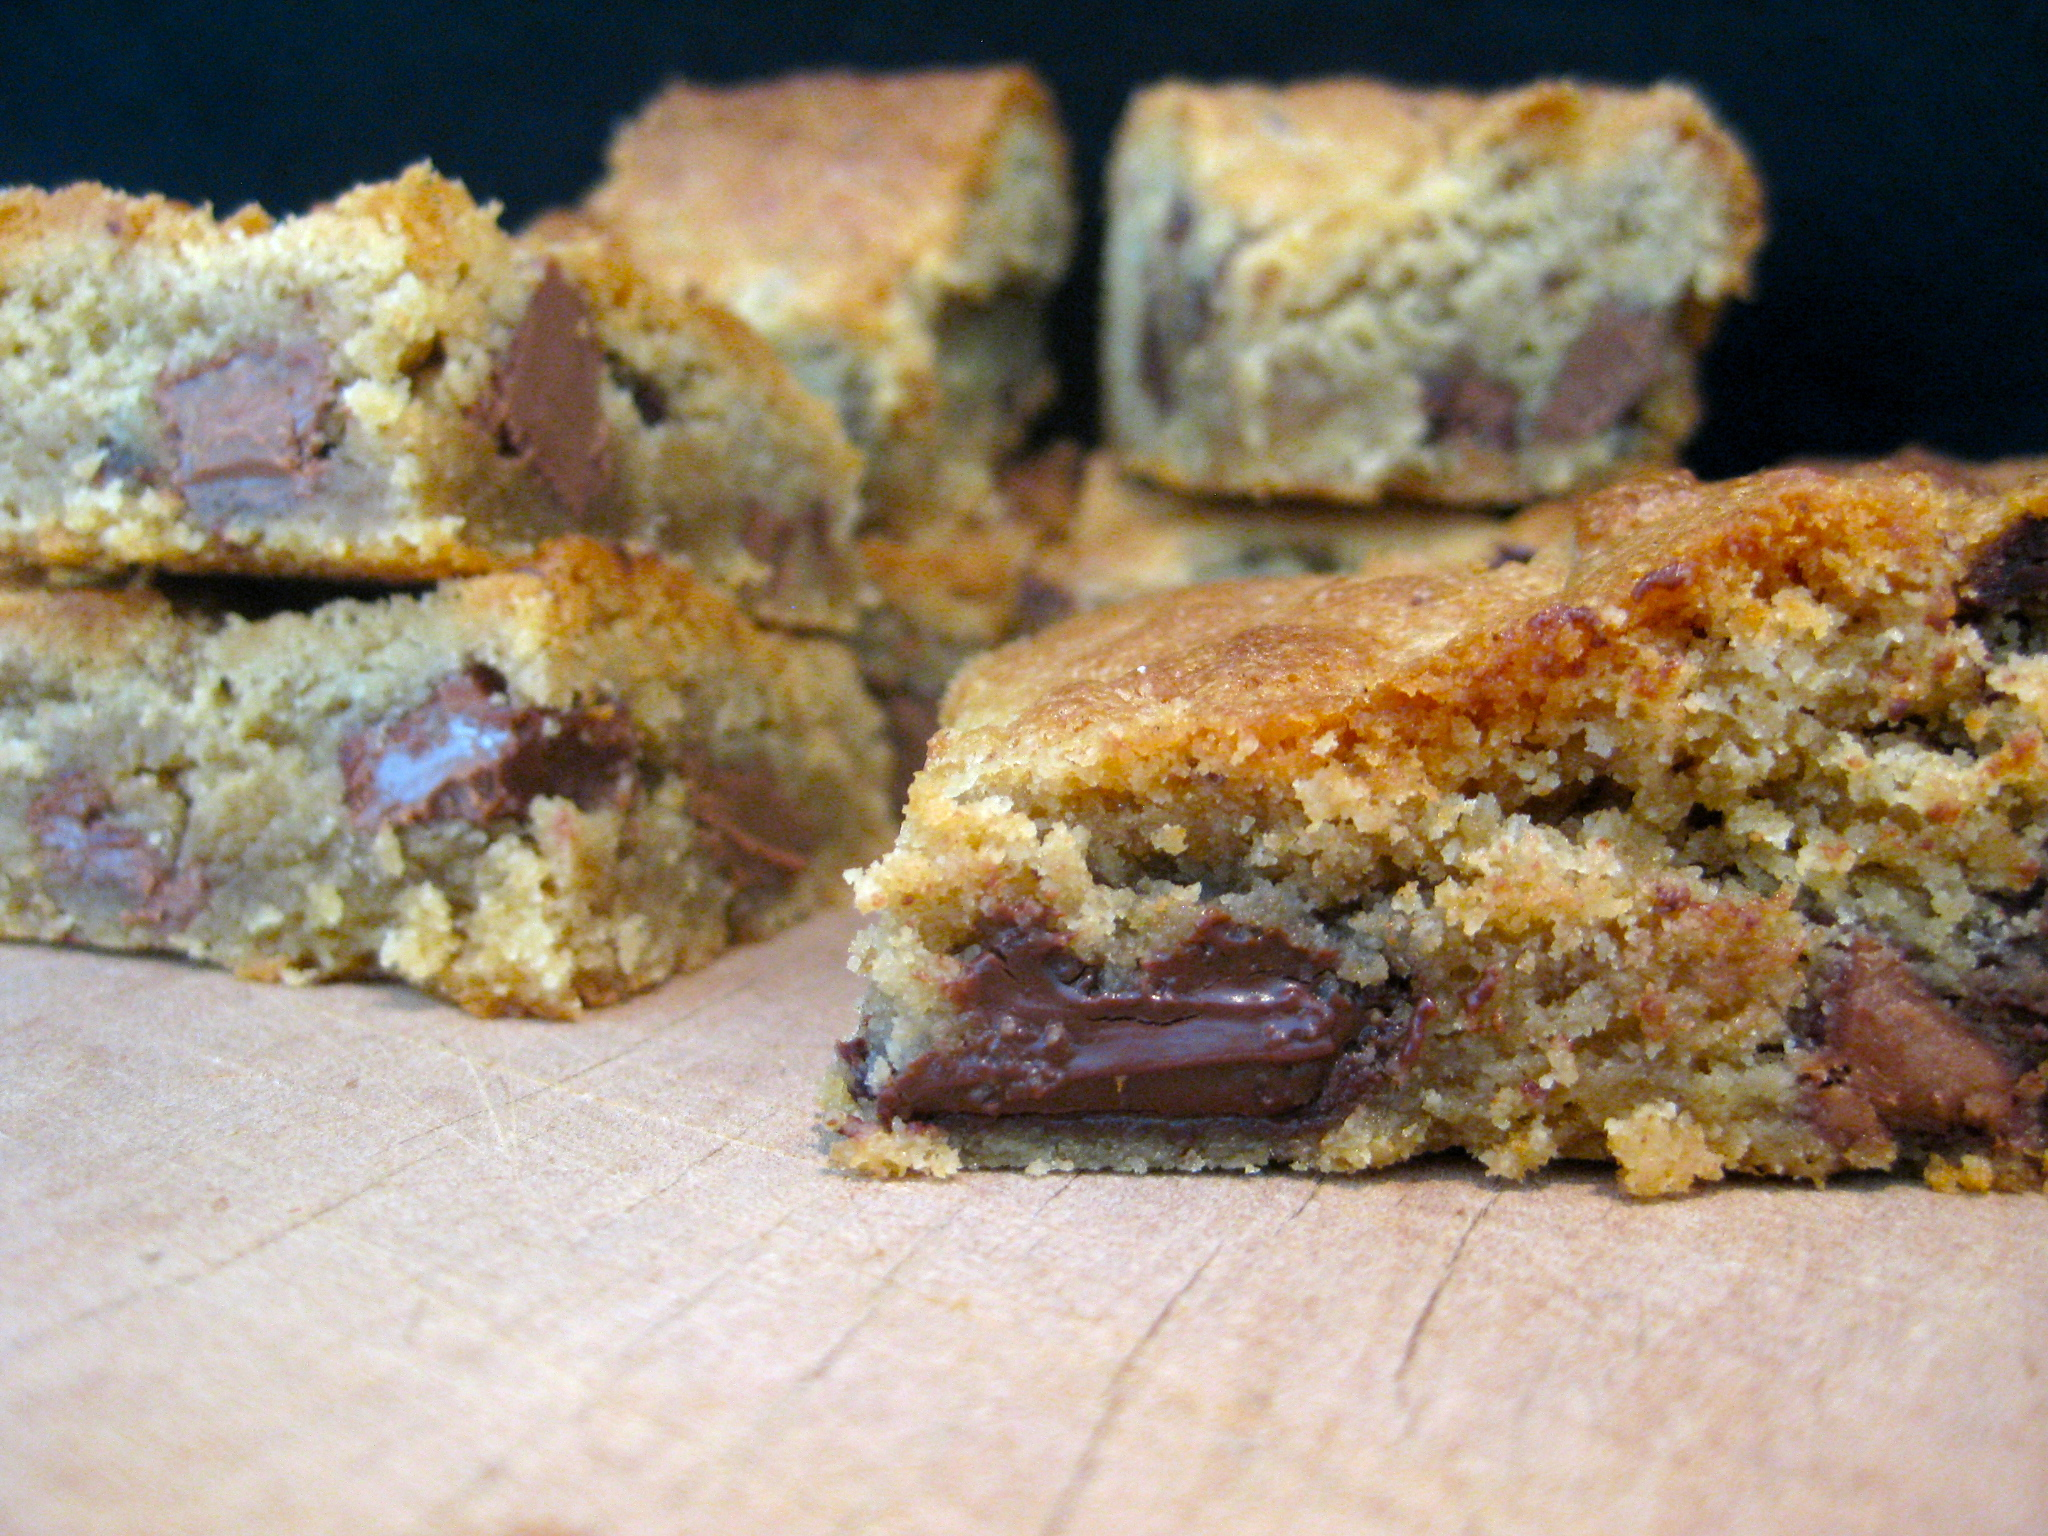 Peanut-butter choc-chip blondie